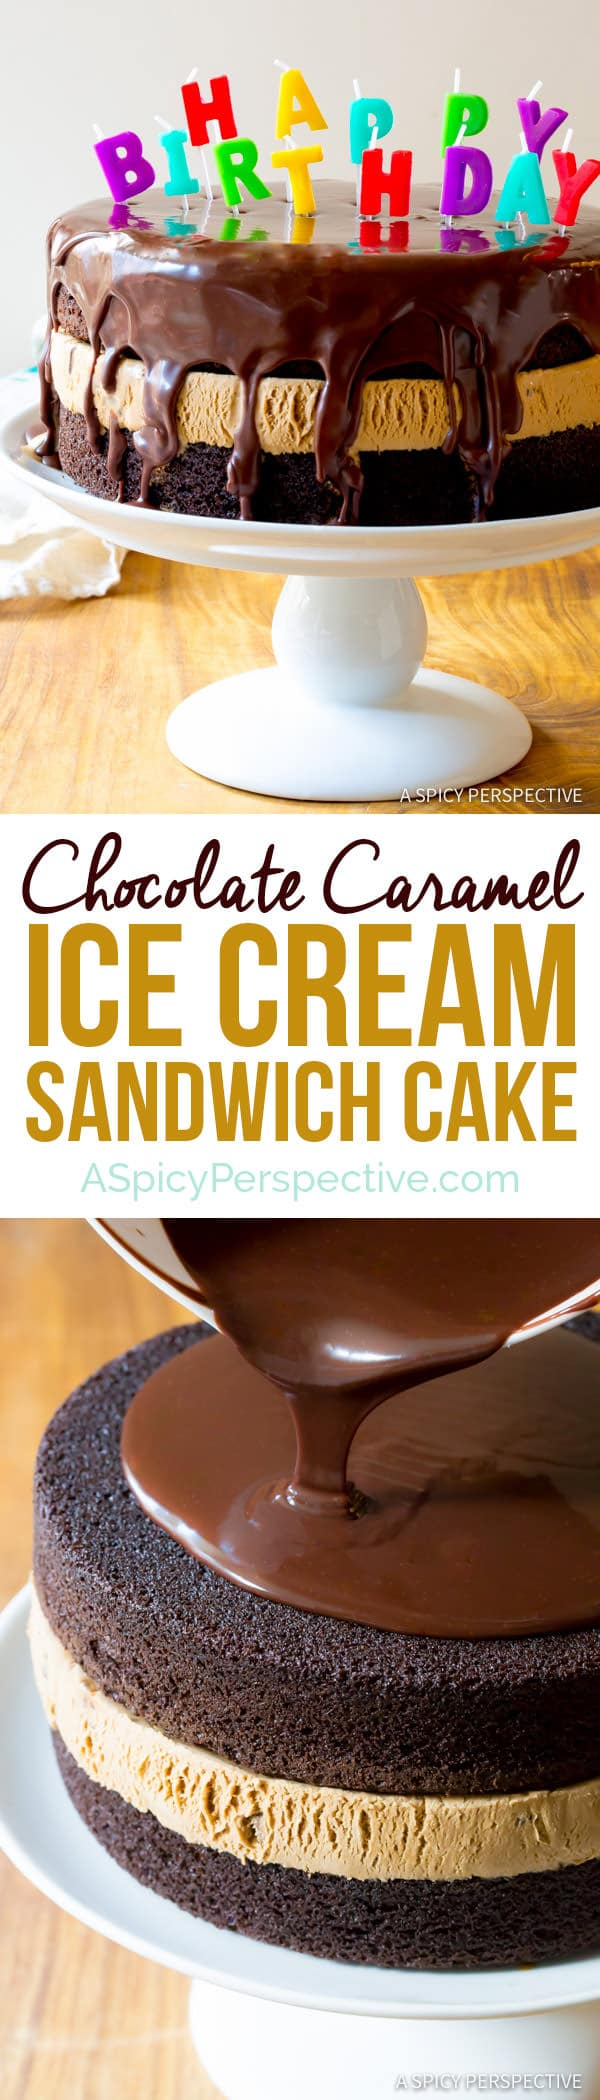 The Best Chocolate Caramel Ice Cream Sandwich Cake Recipe | ASpicyPerspective.com